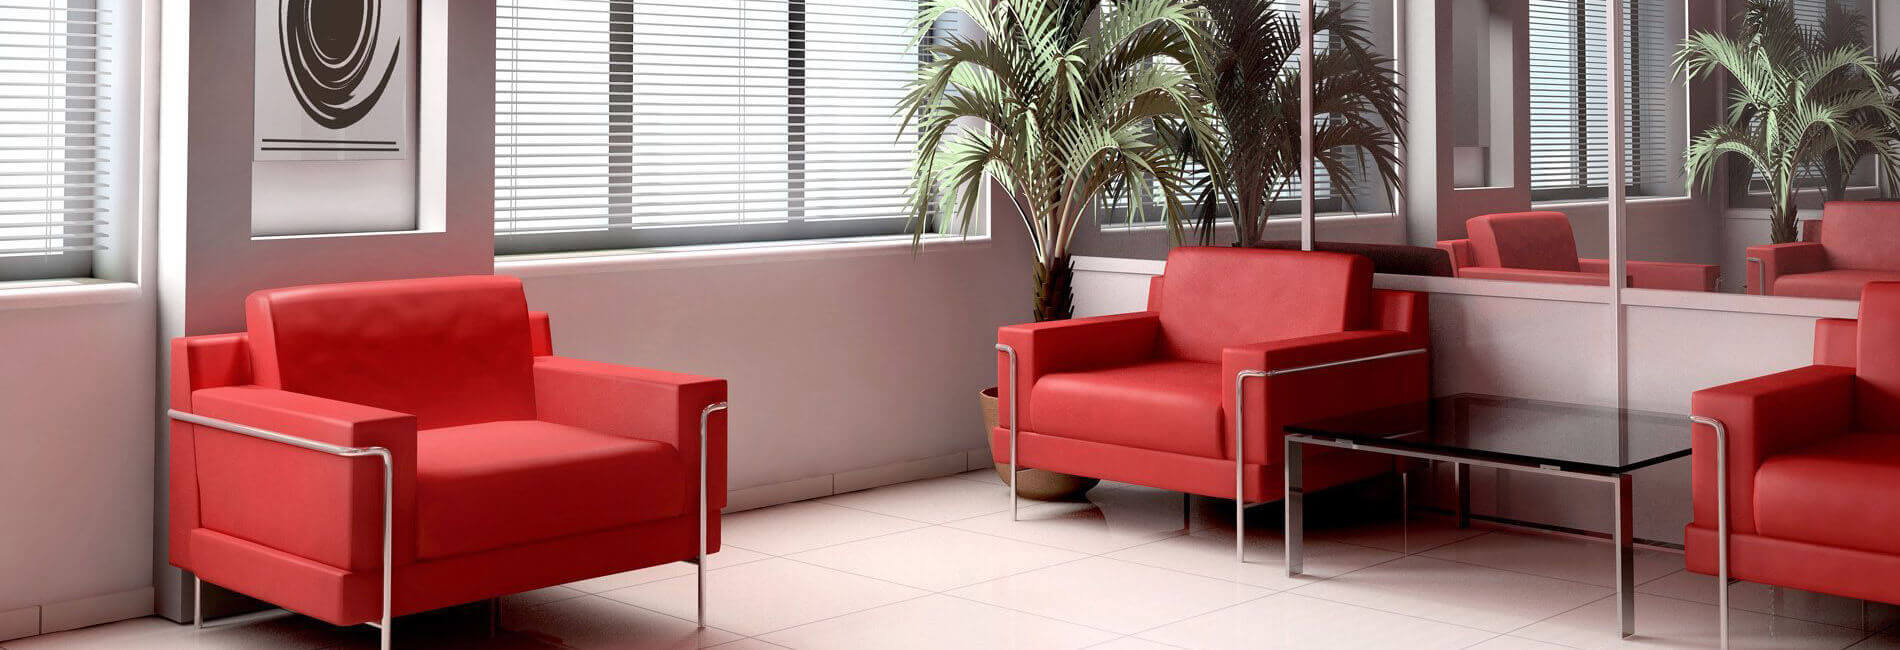 Astonishing Office Waiting Room Chairs Interior Design Ideas Tzicisoteloinfo